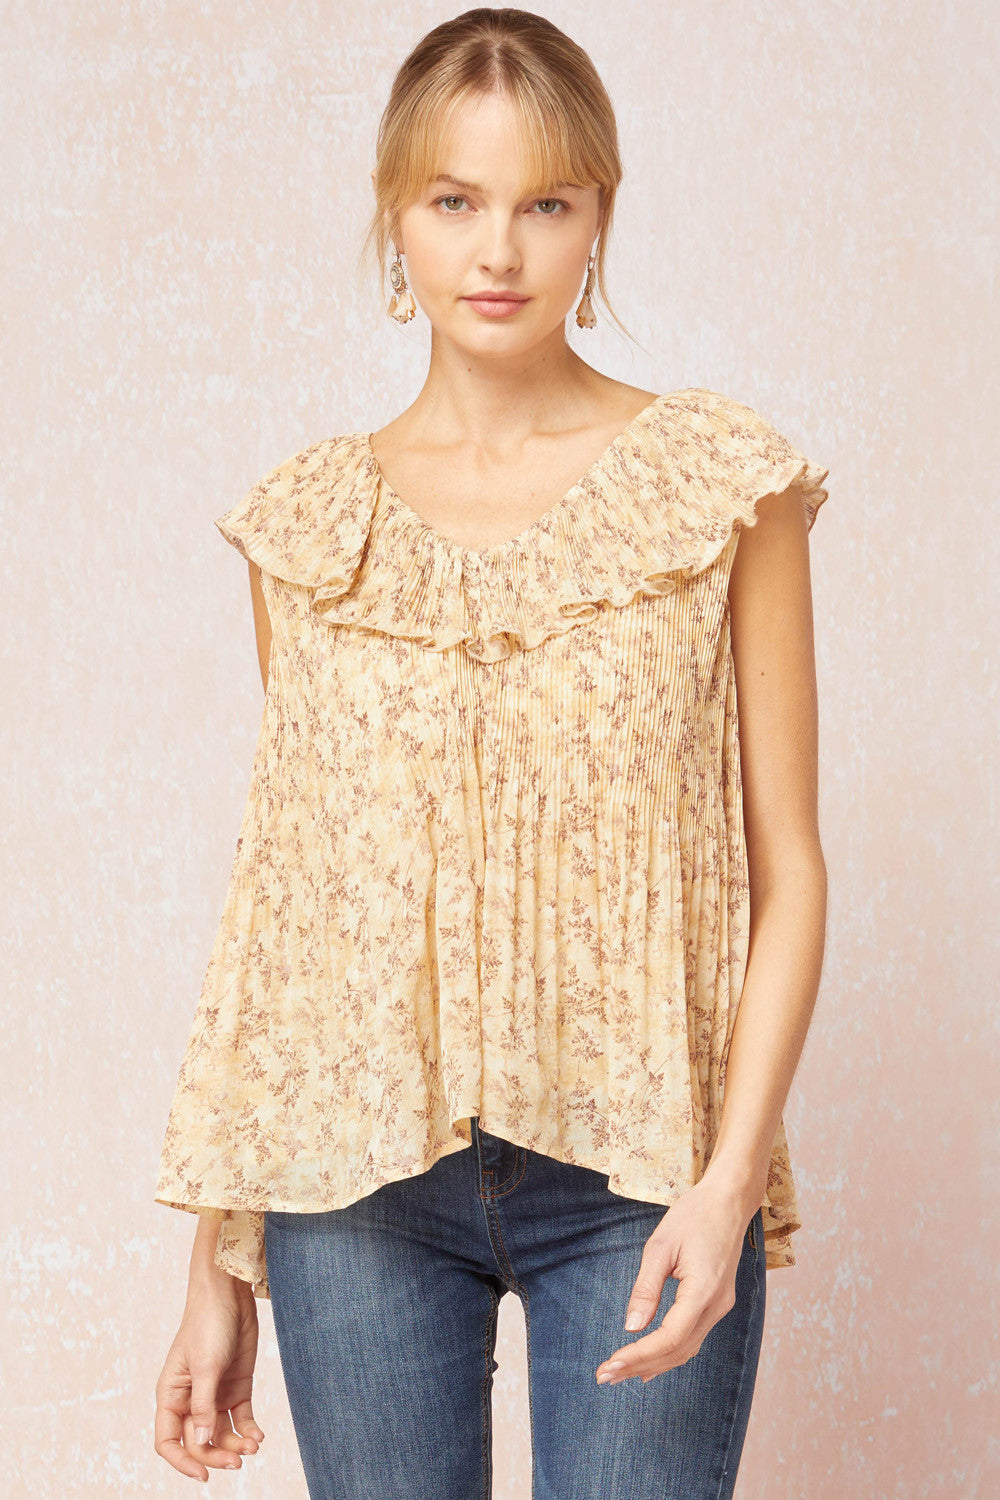 Entro Straw Floral Pint Pleated Ruffle Flounce Top - Sensual Fashion Boutique